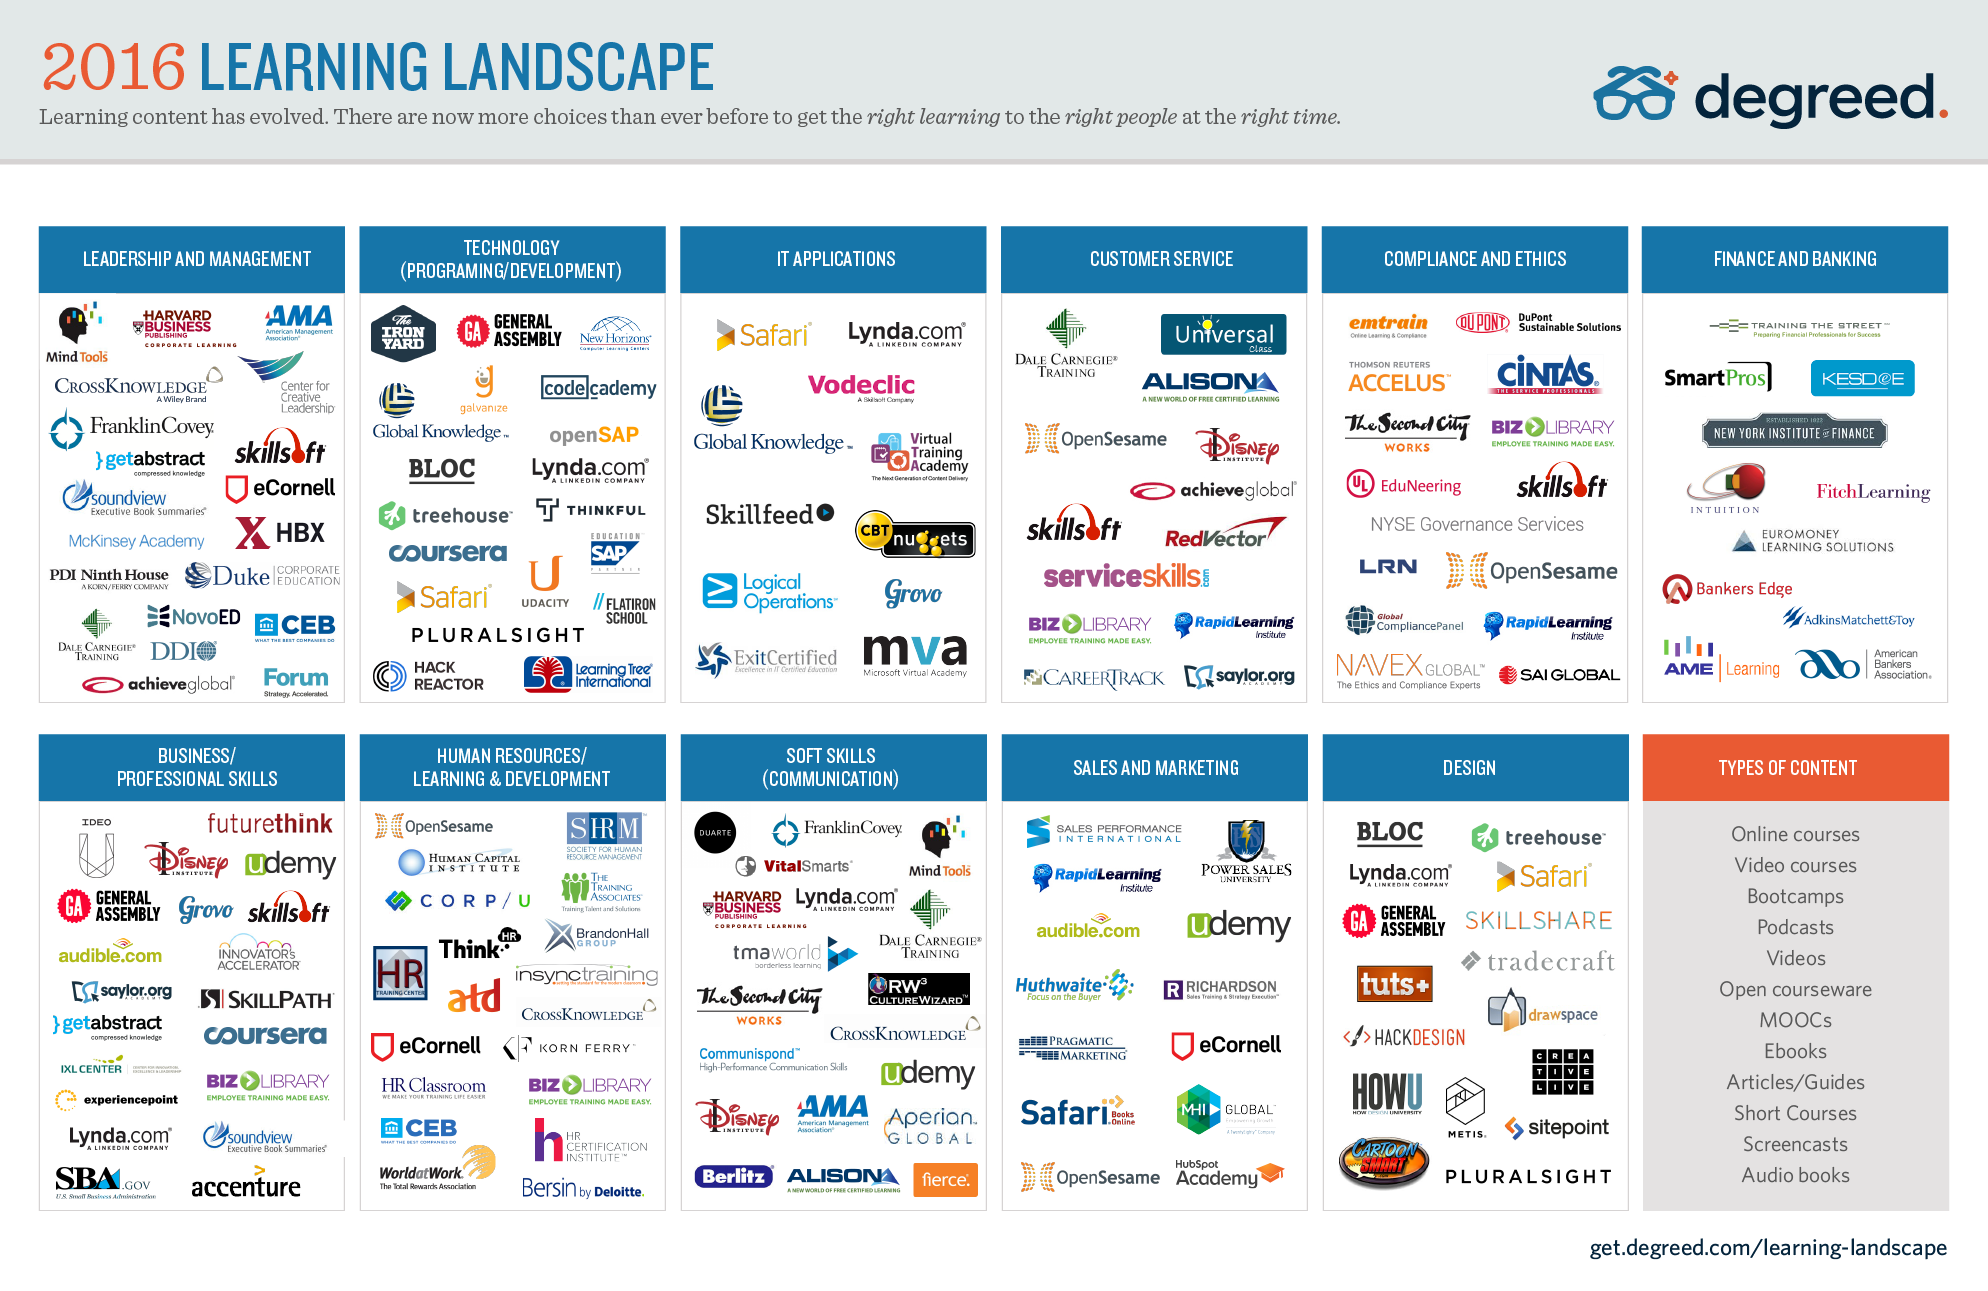 Infographic: The Learning Content Landscape